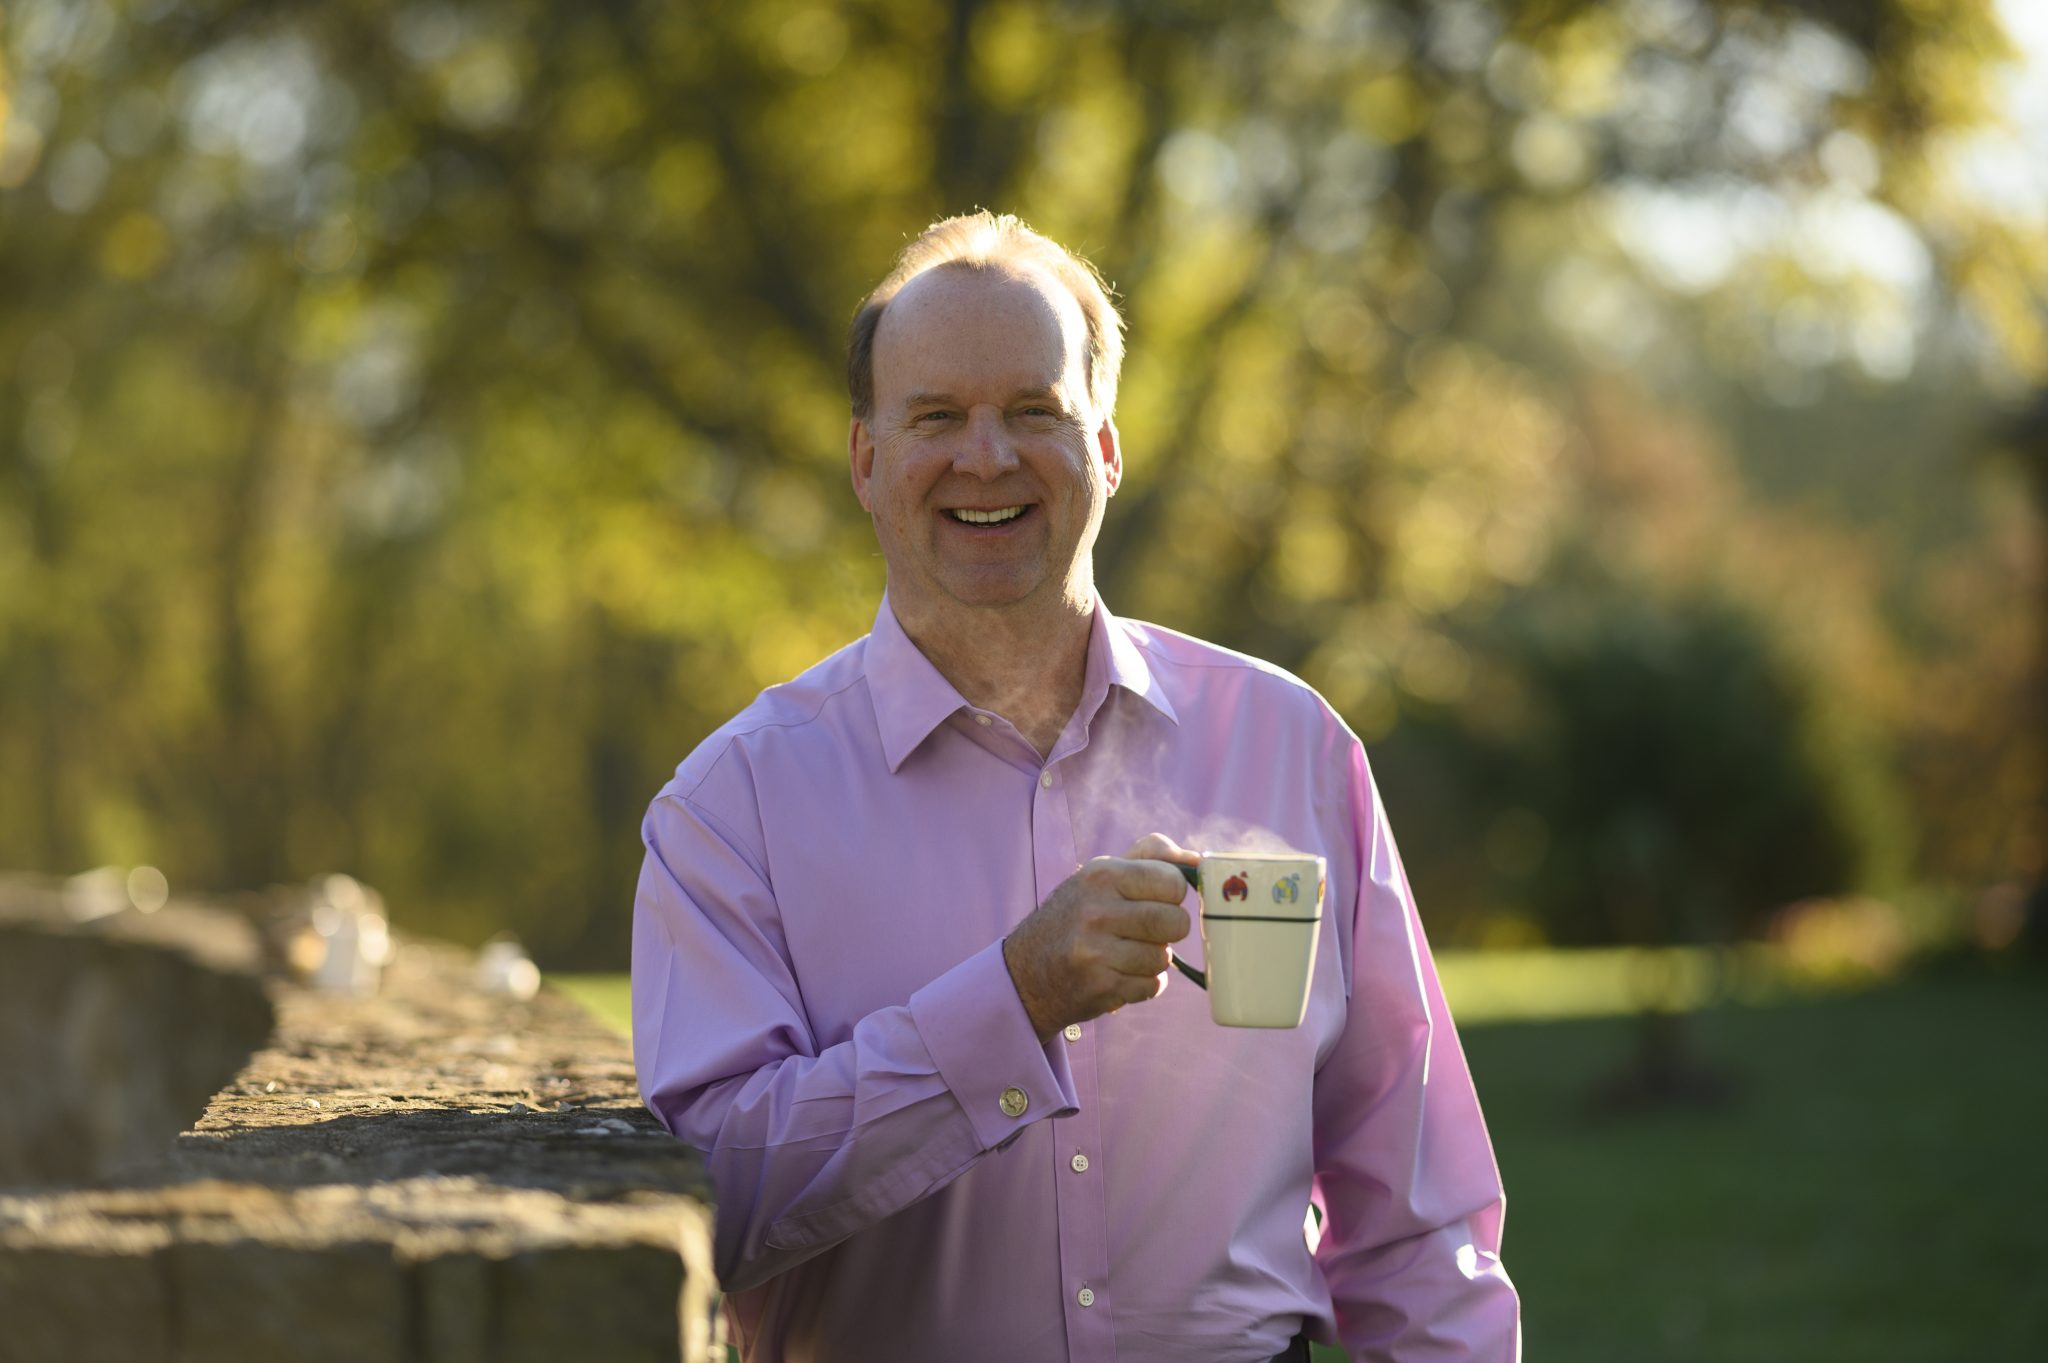 Mark Meade smiles and enjoys a steaming cup of coffee outside.